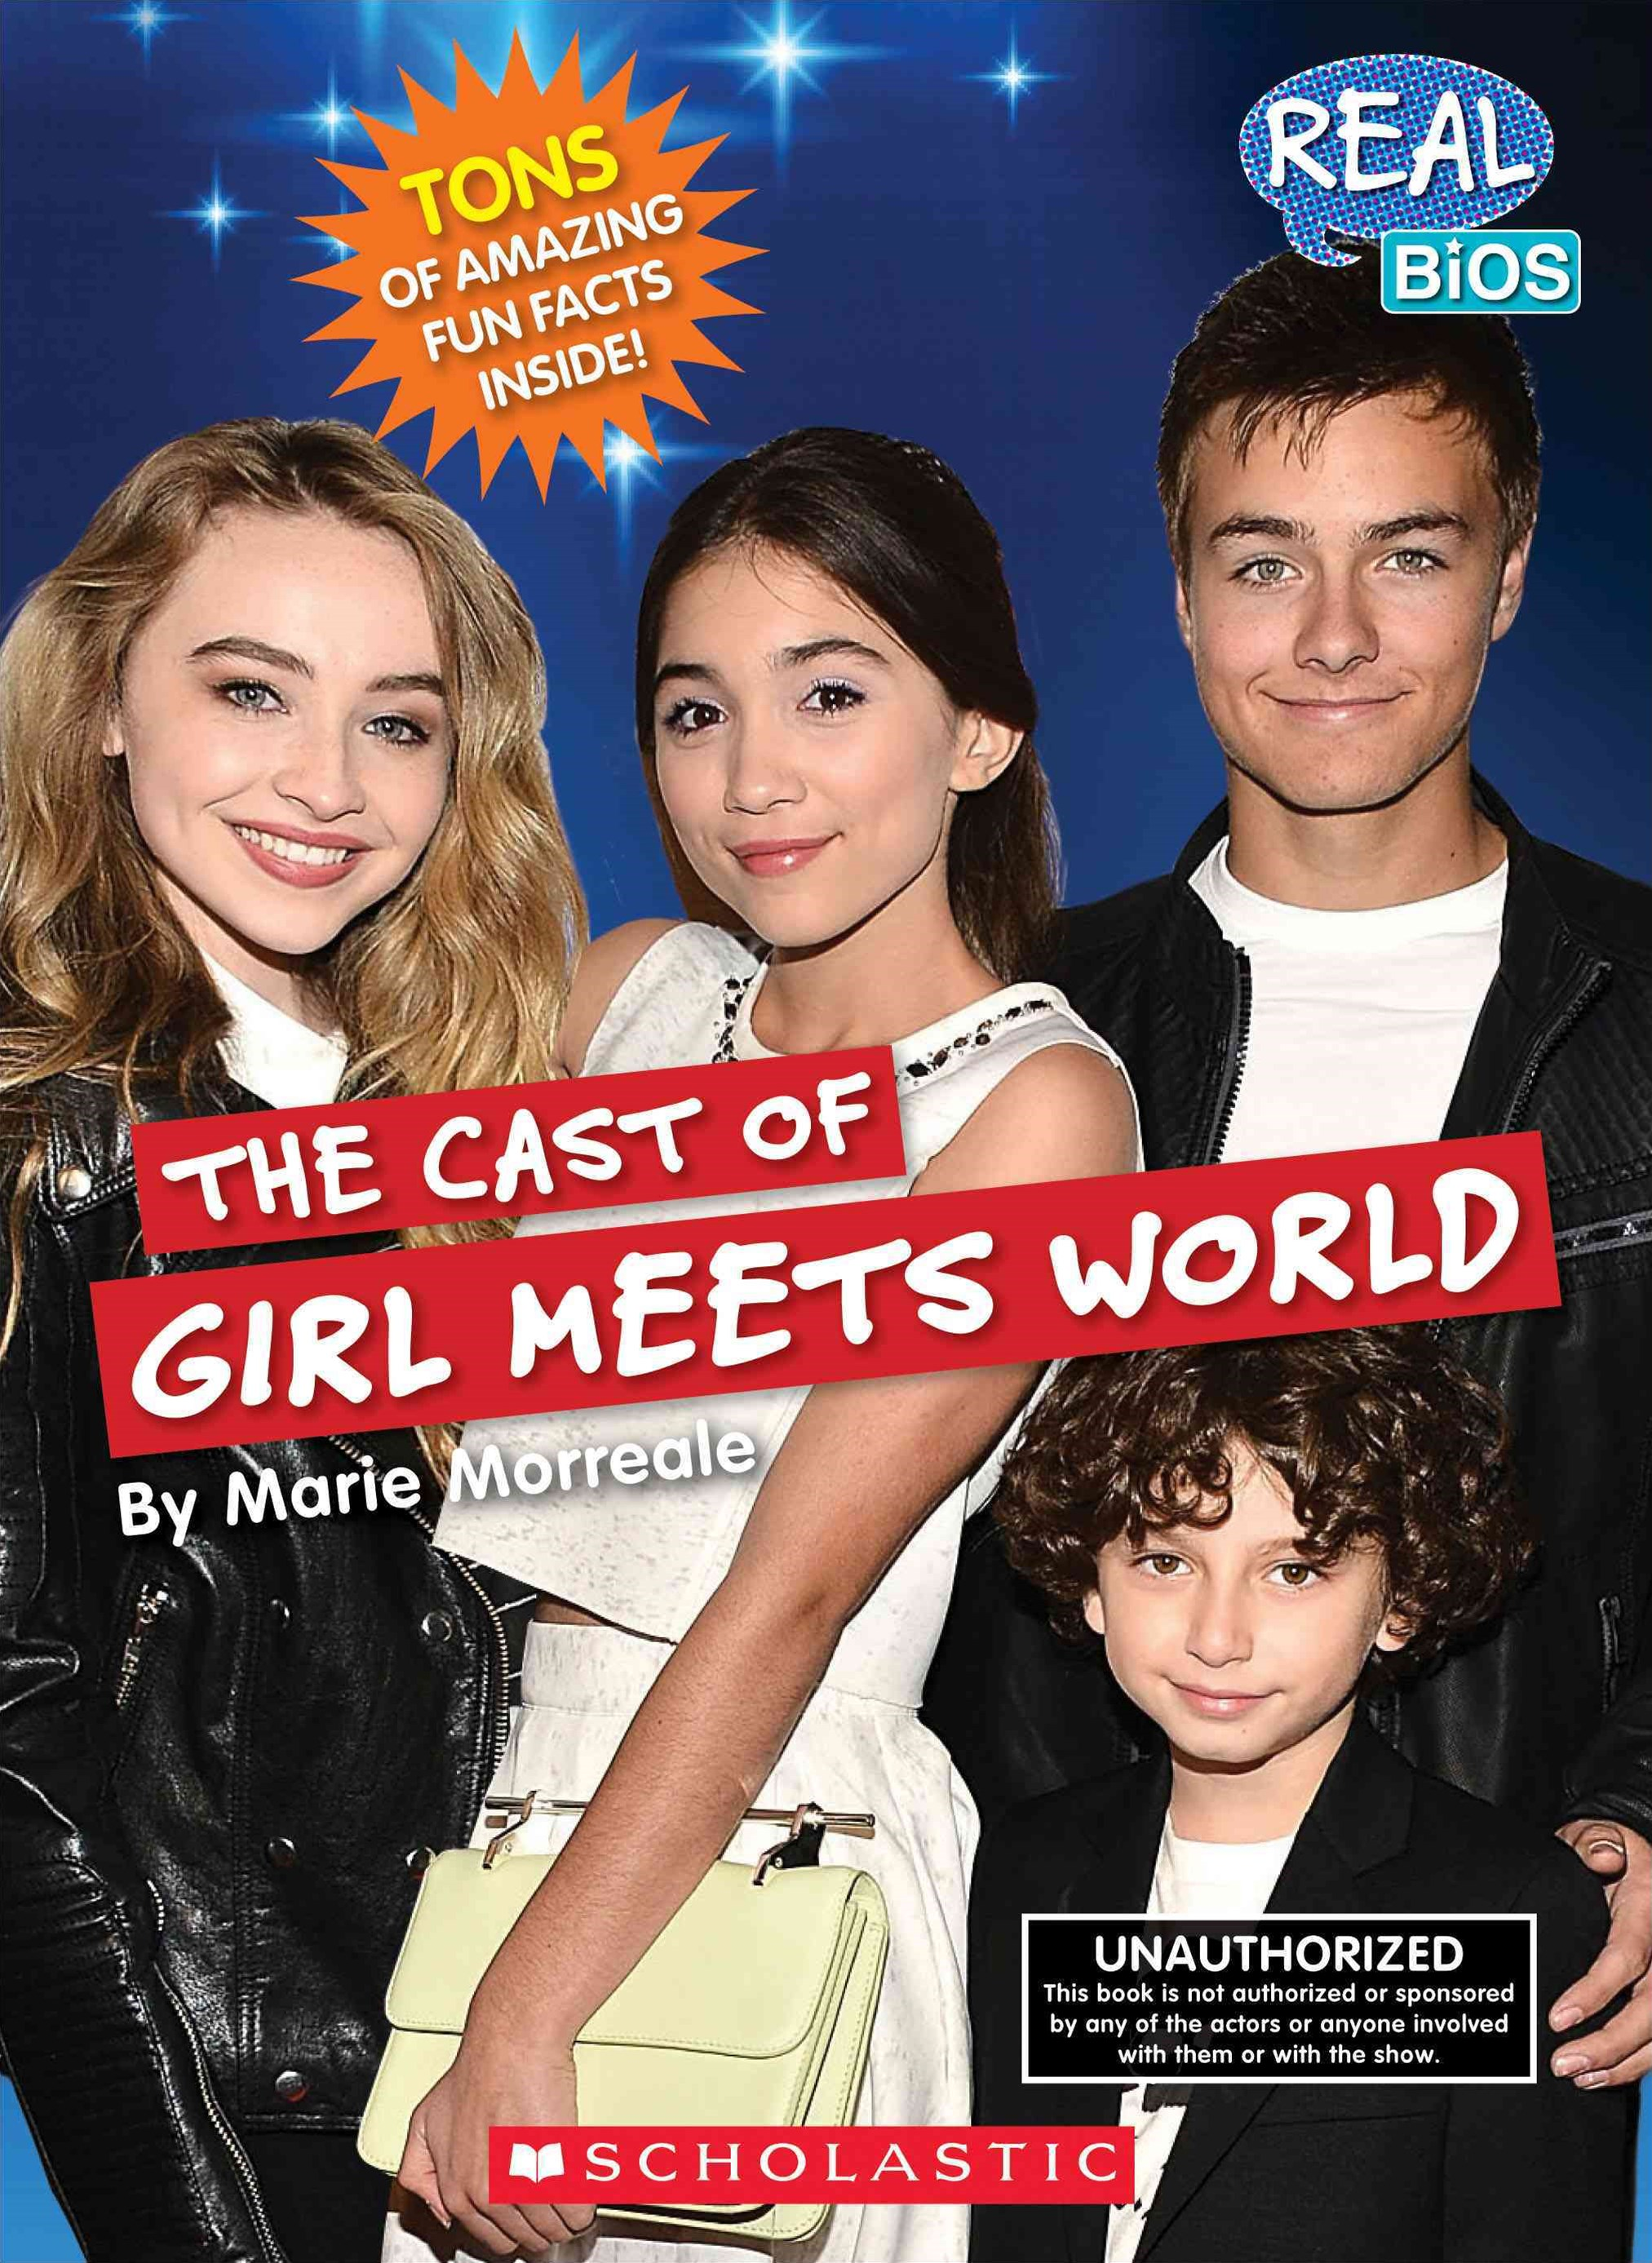 The Cast of Girl Meets World